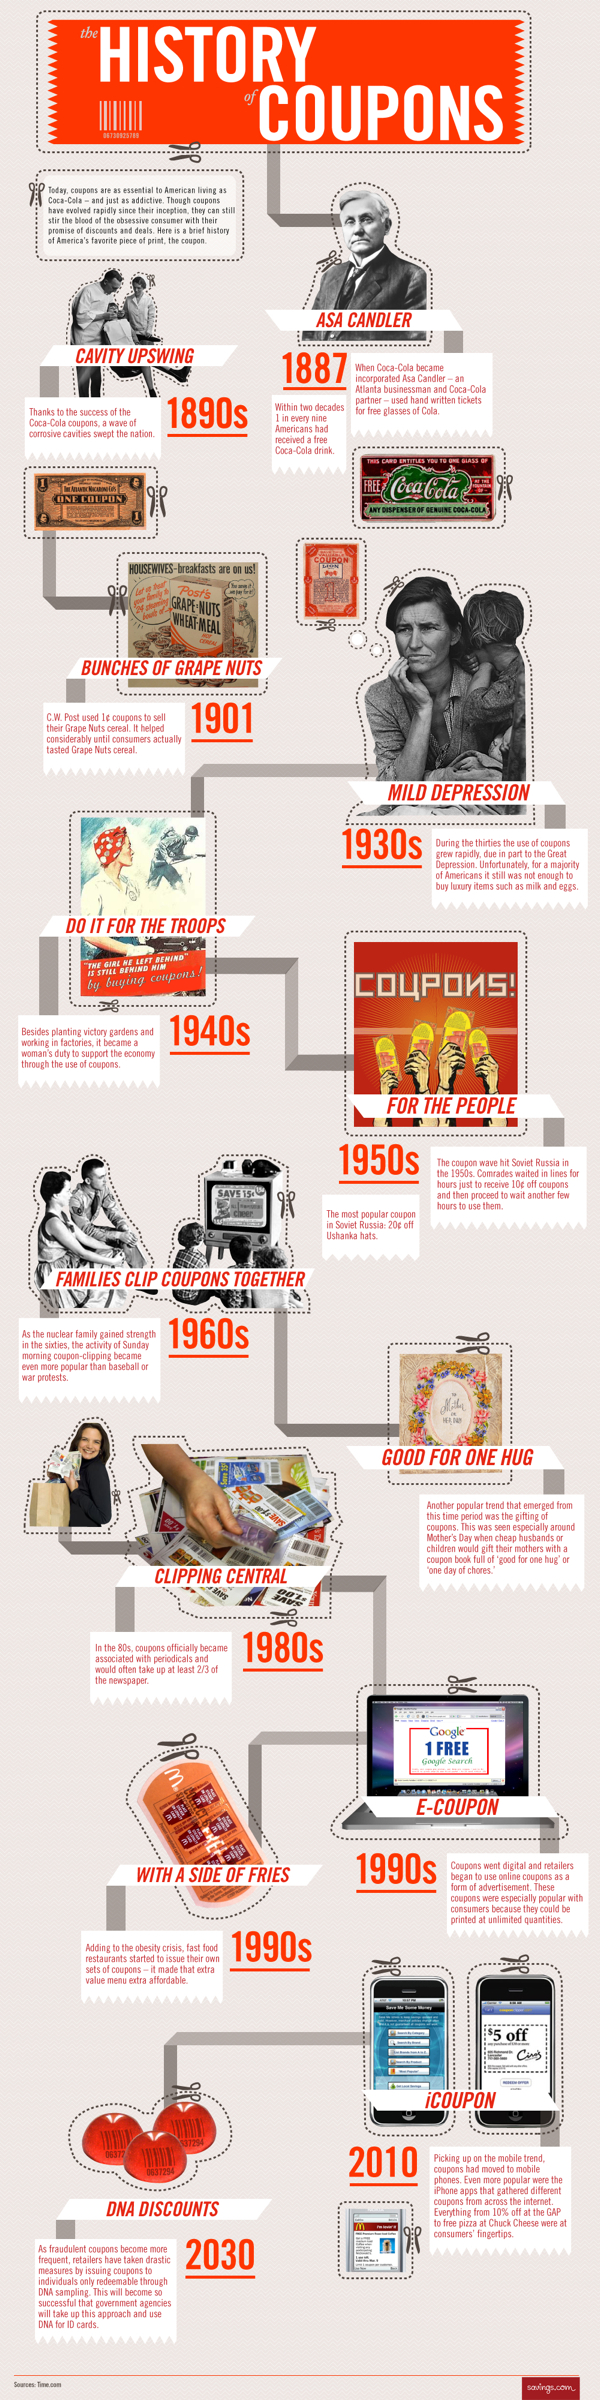 Infographic: The History of Coupons